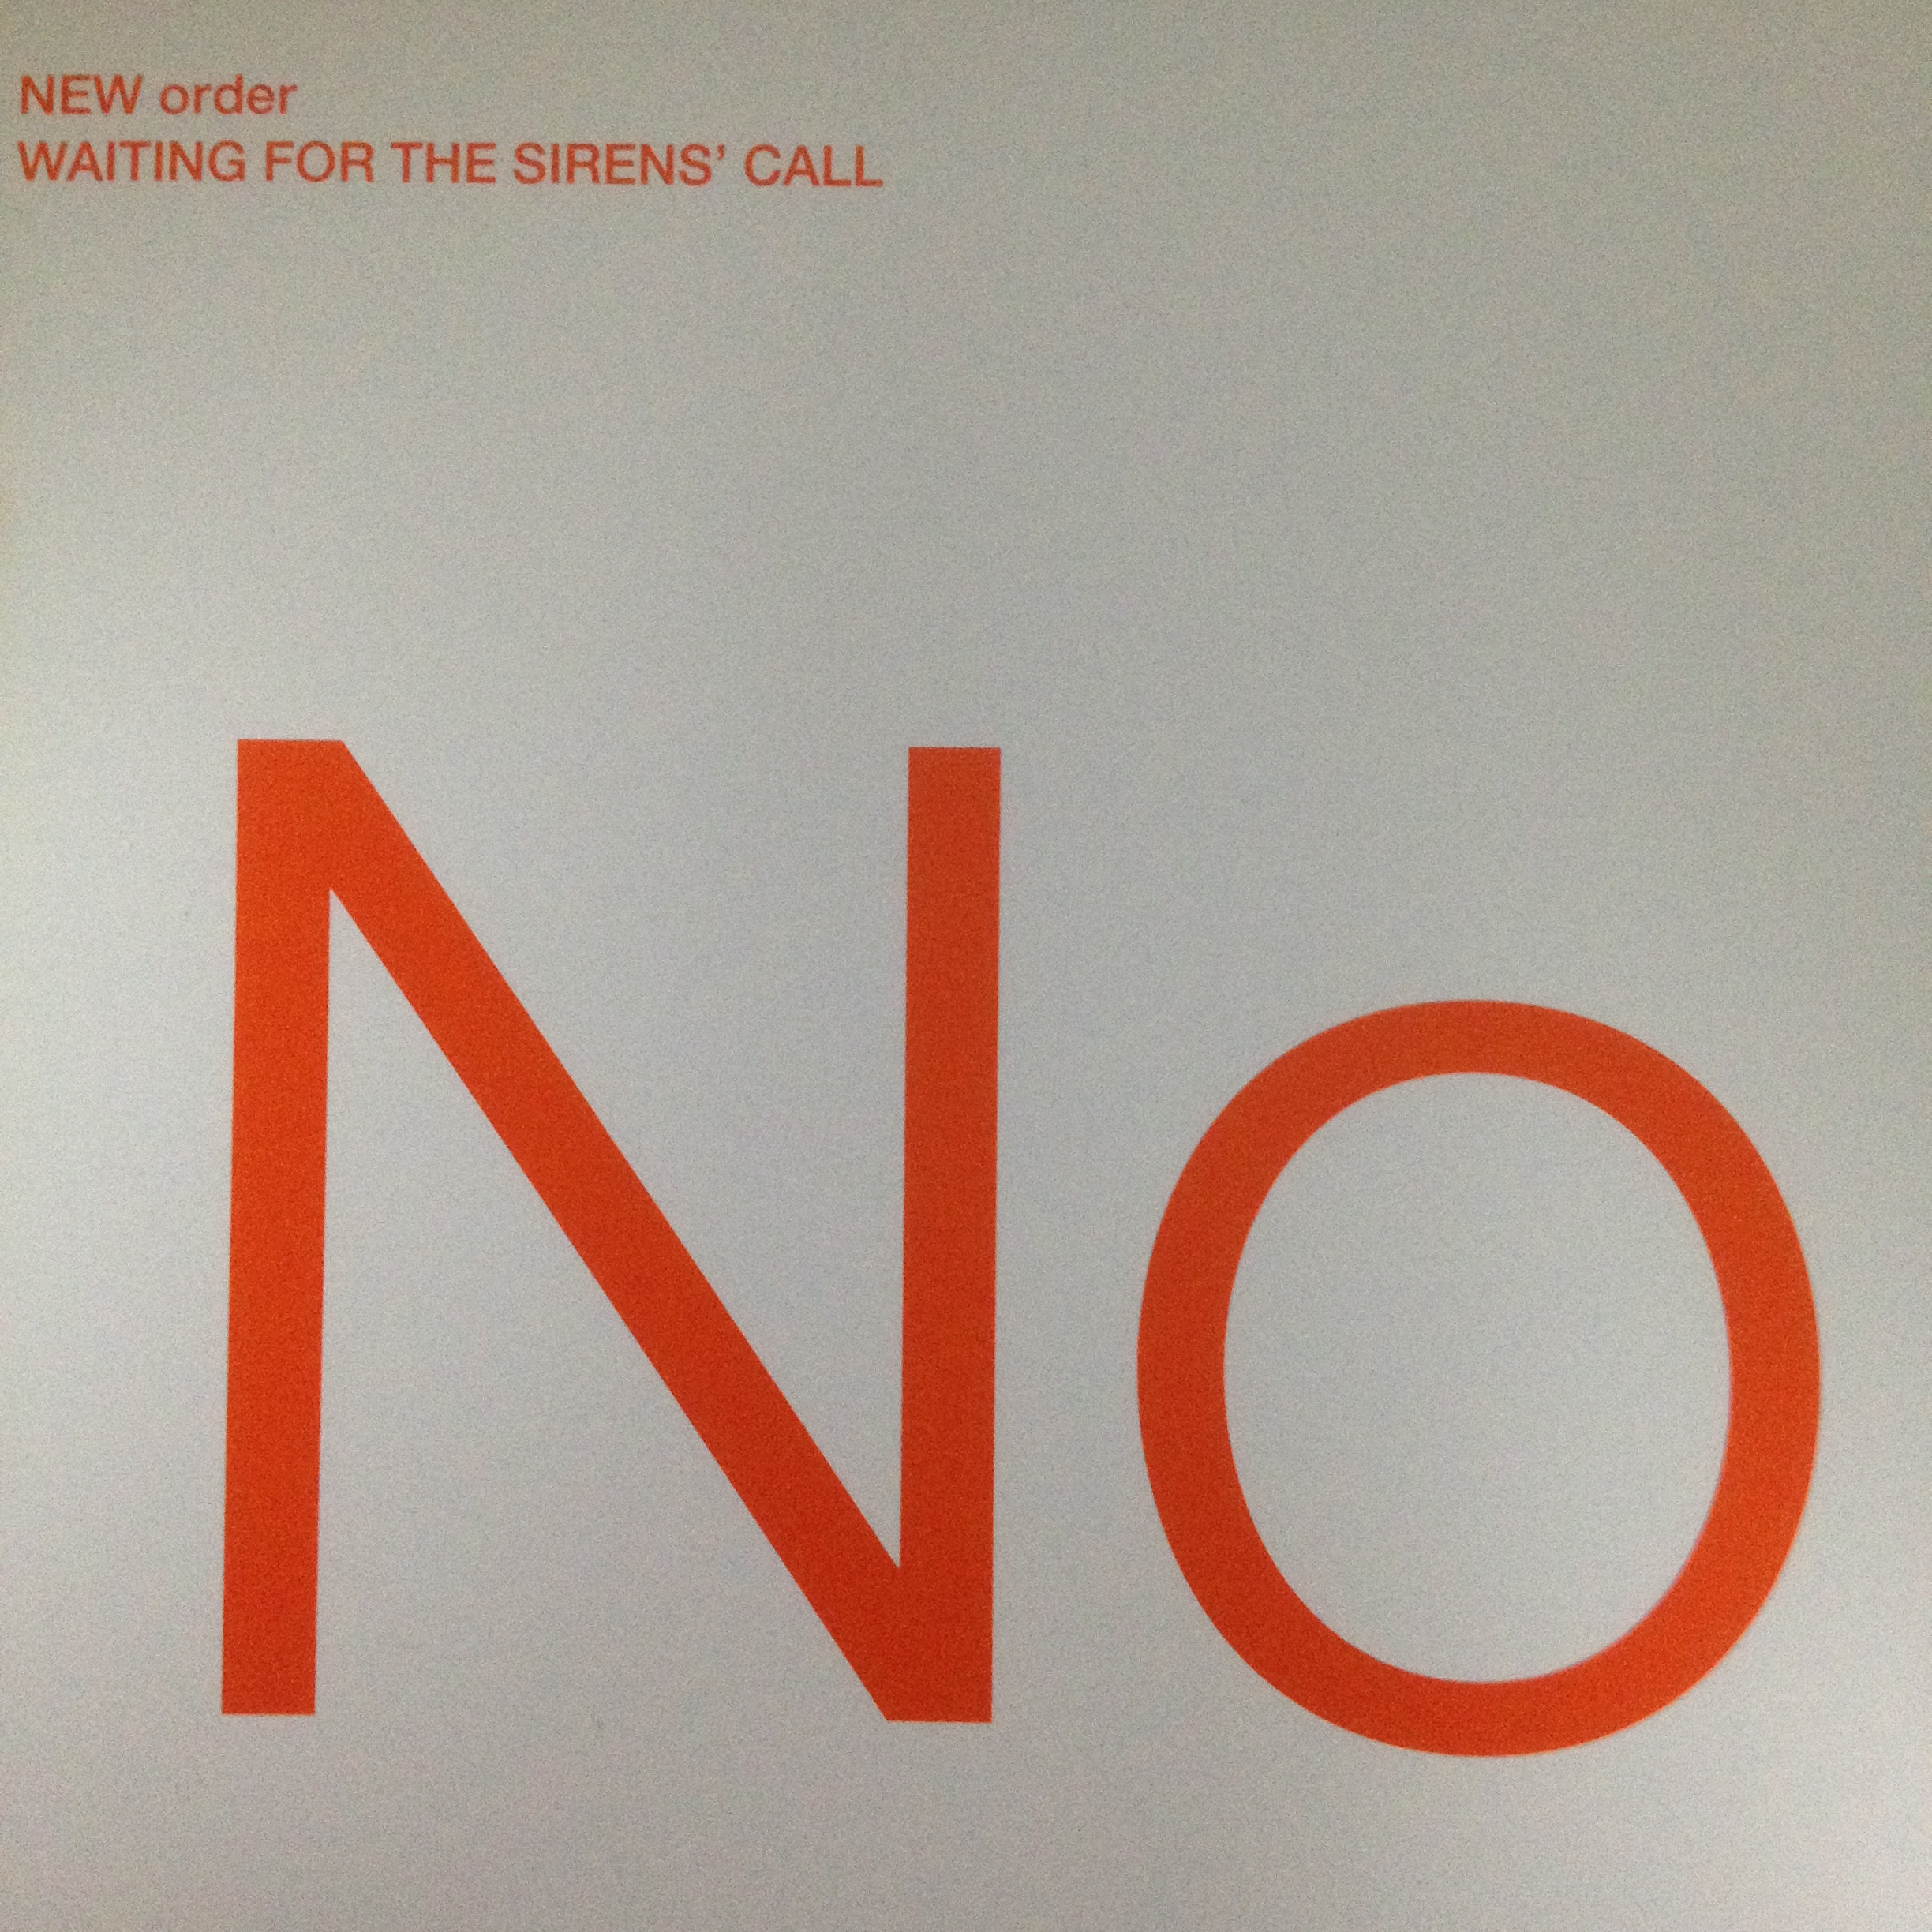 NEW ORDER 「HEY NOW WHAT YOU DOING」「WAITING FOR 」